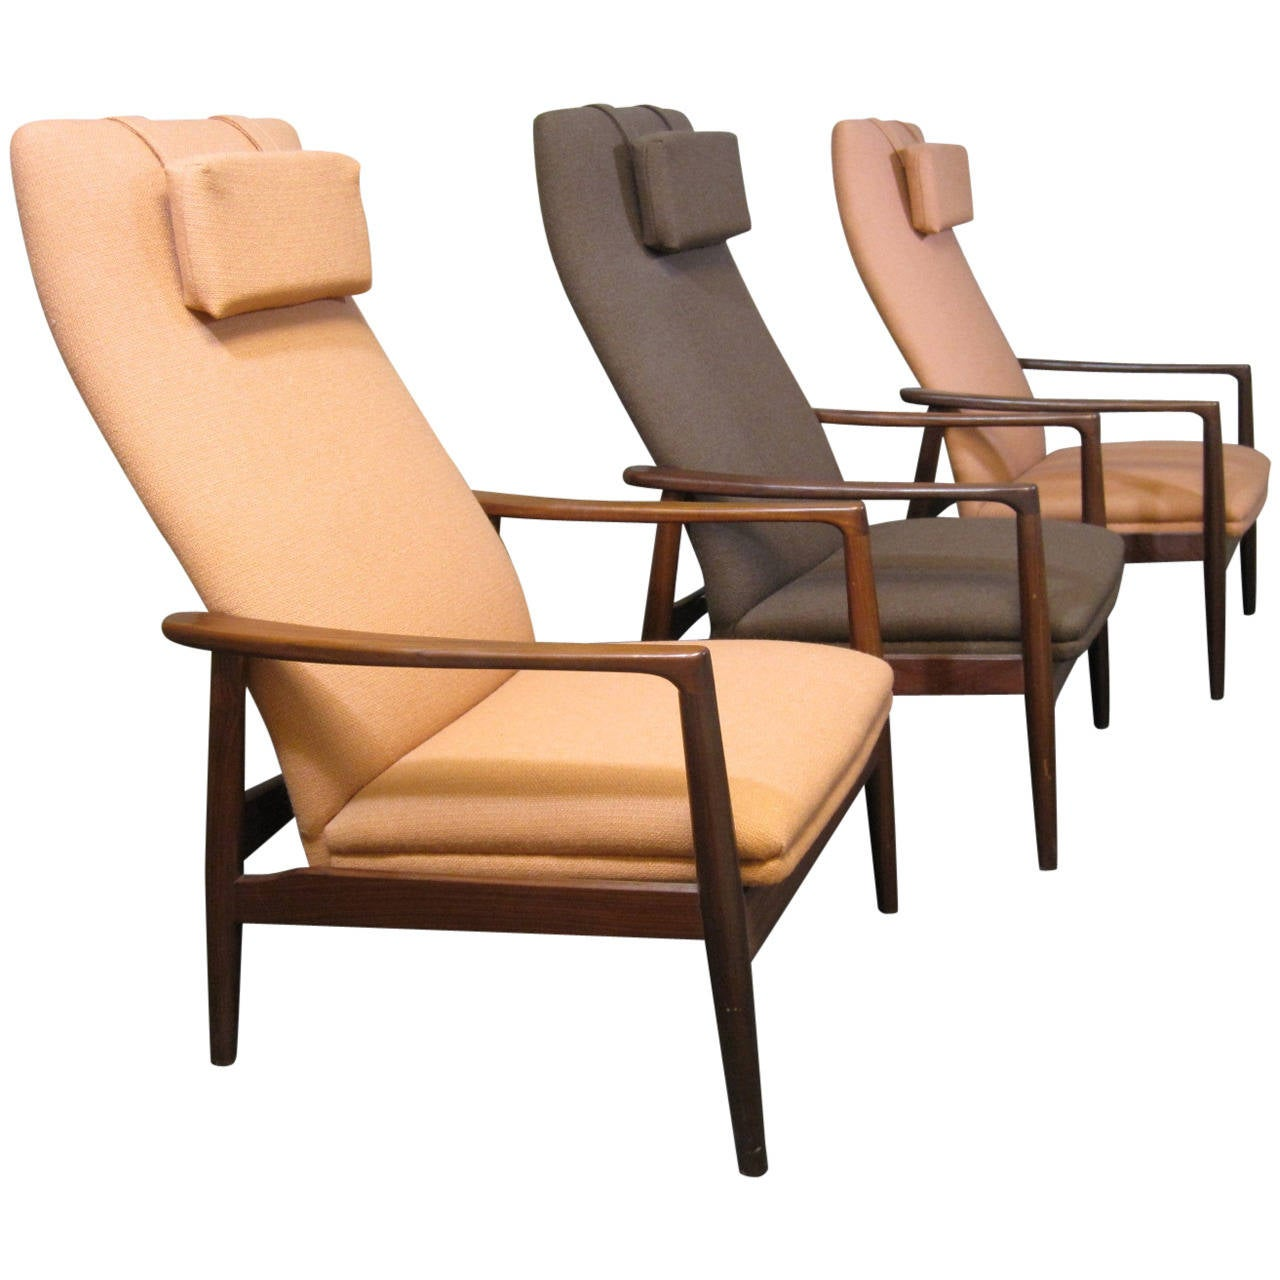 swedish leather recliner chairs white folding for sale scandinavian teak reclining lounge at 1stdibs